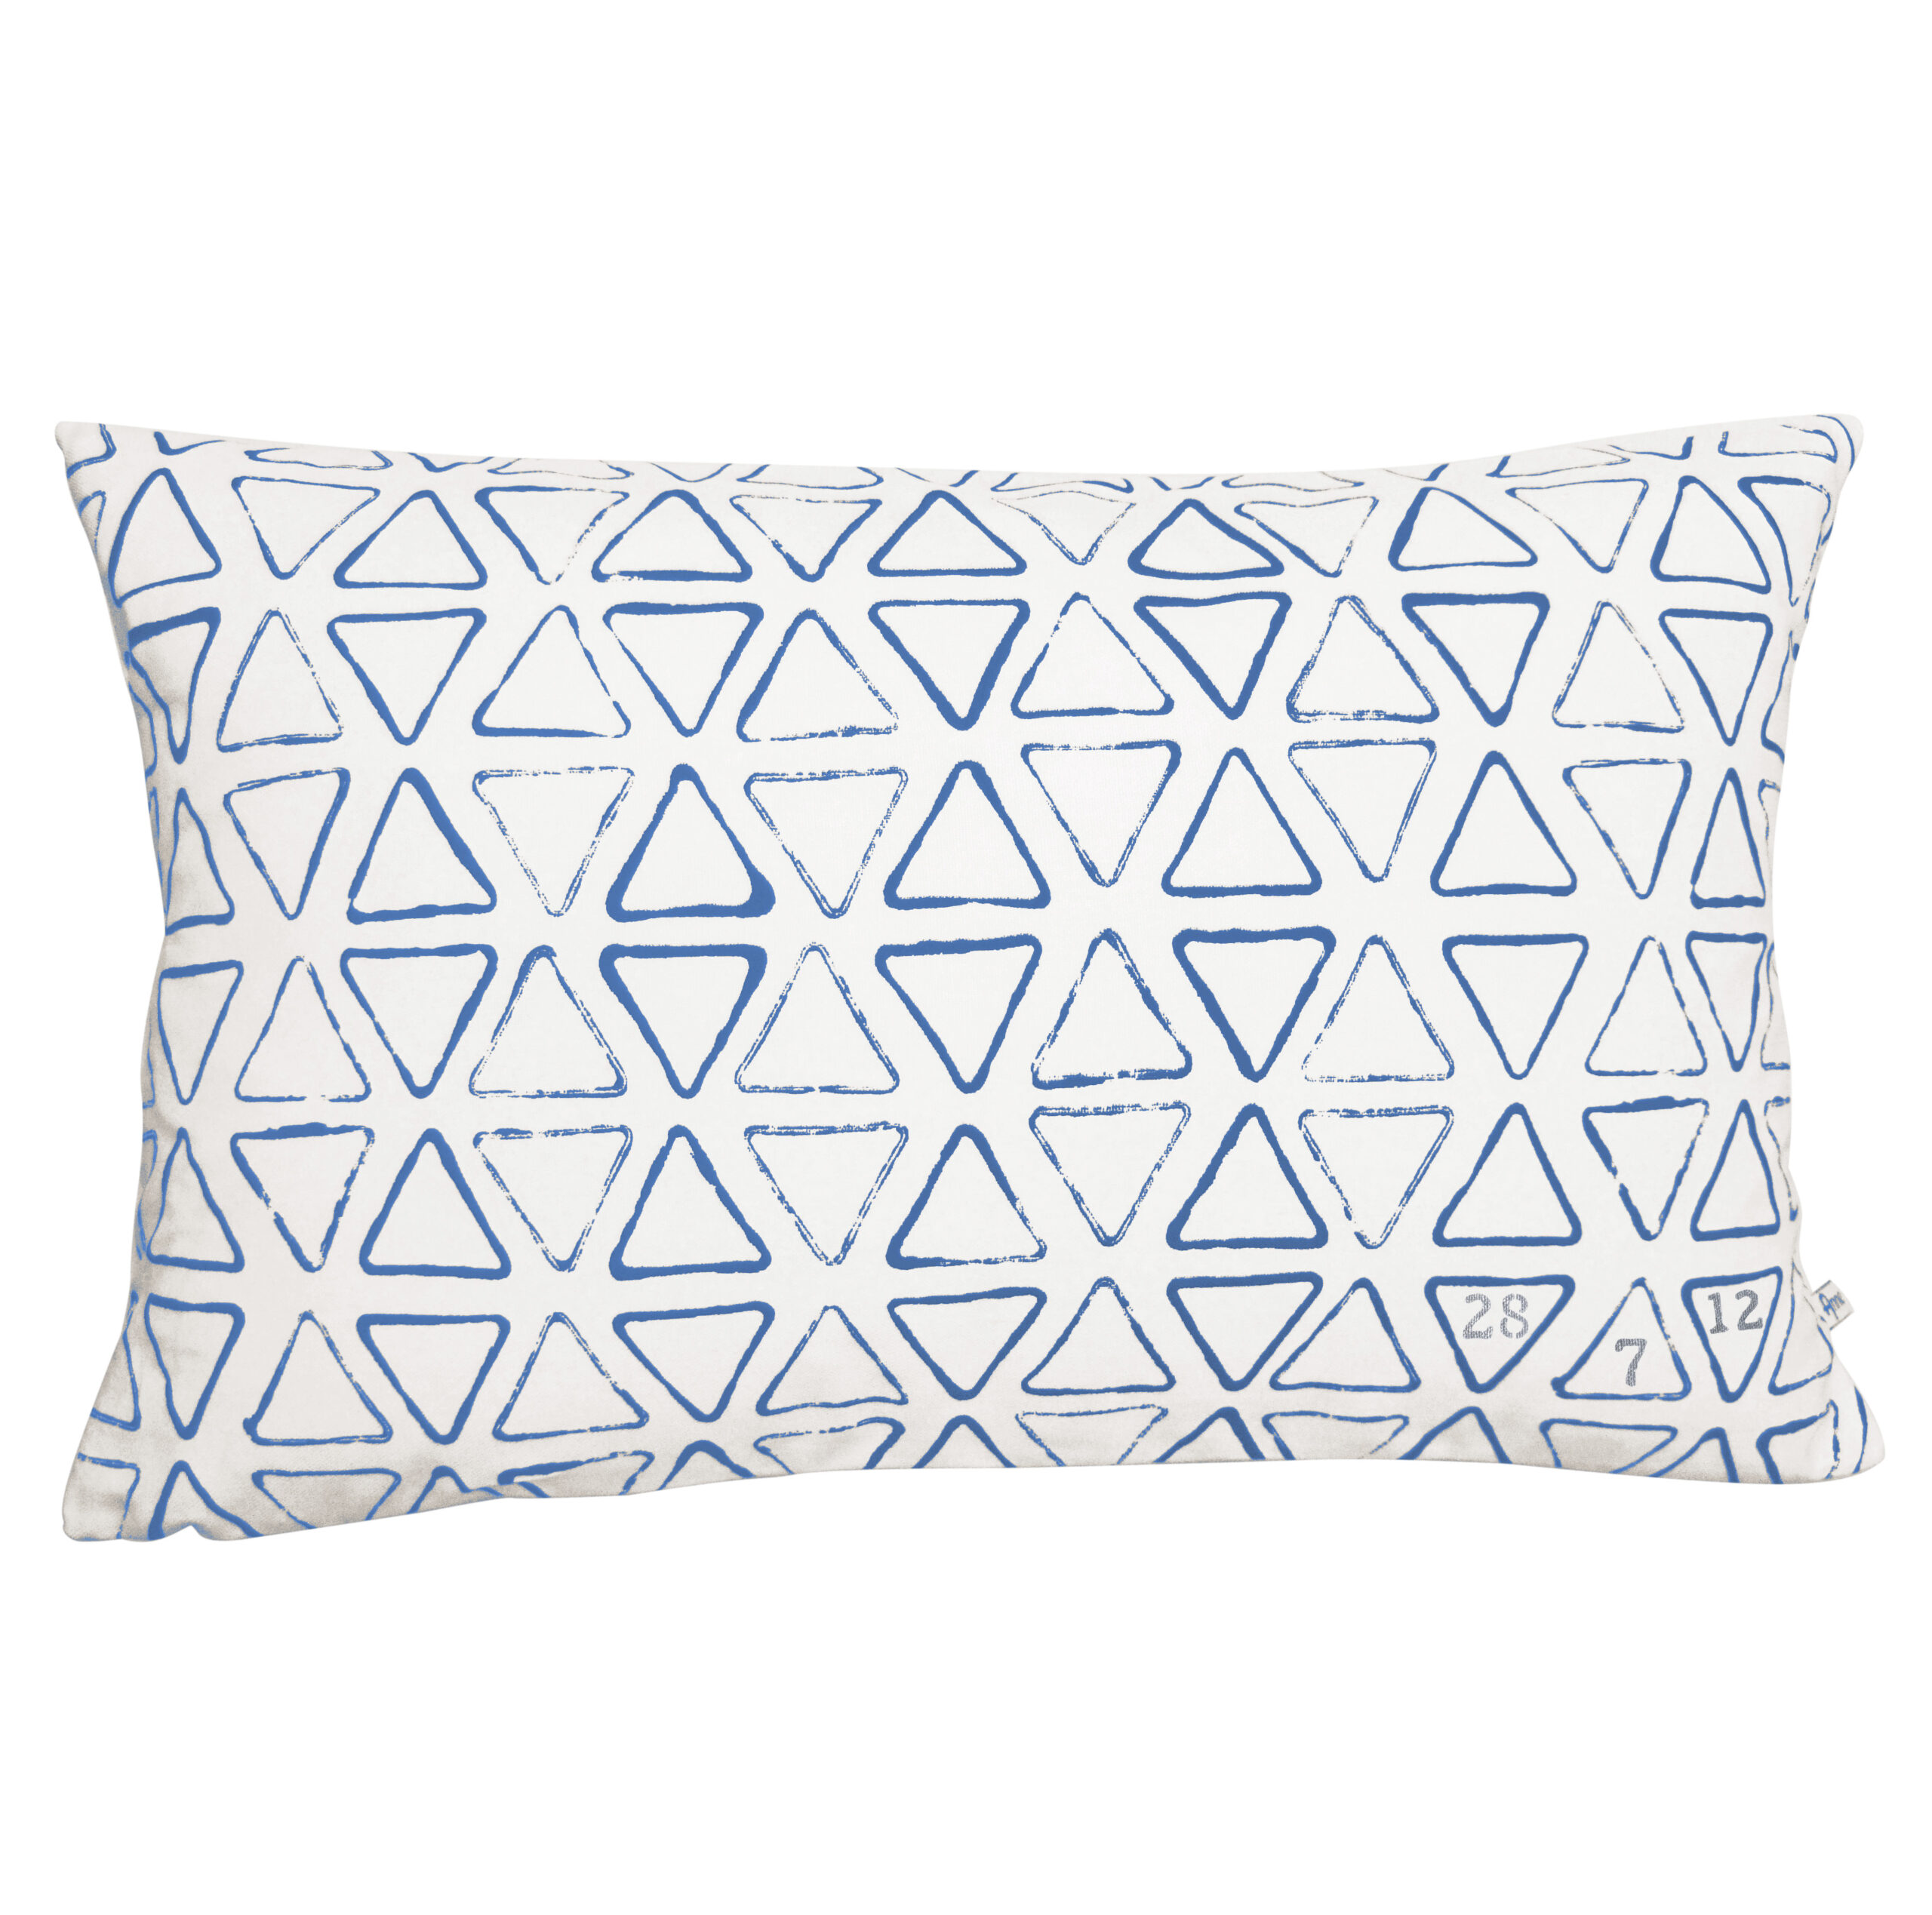 Oblong cushion with date silver